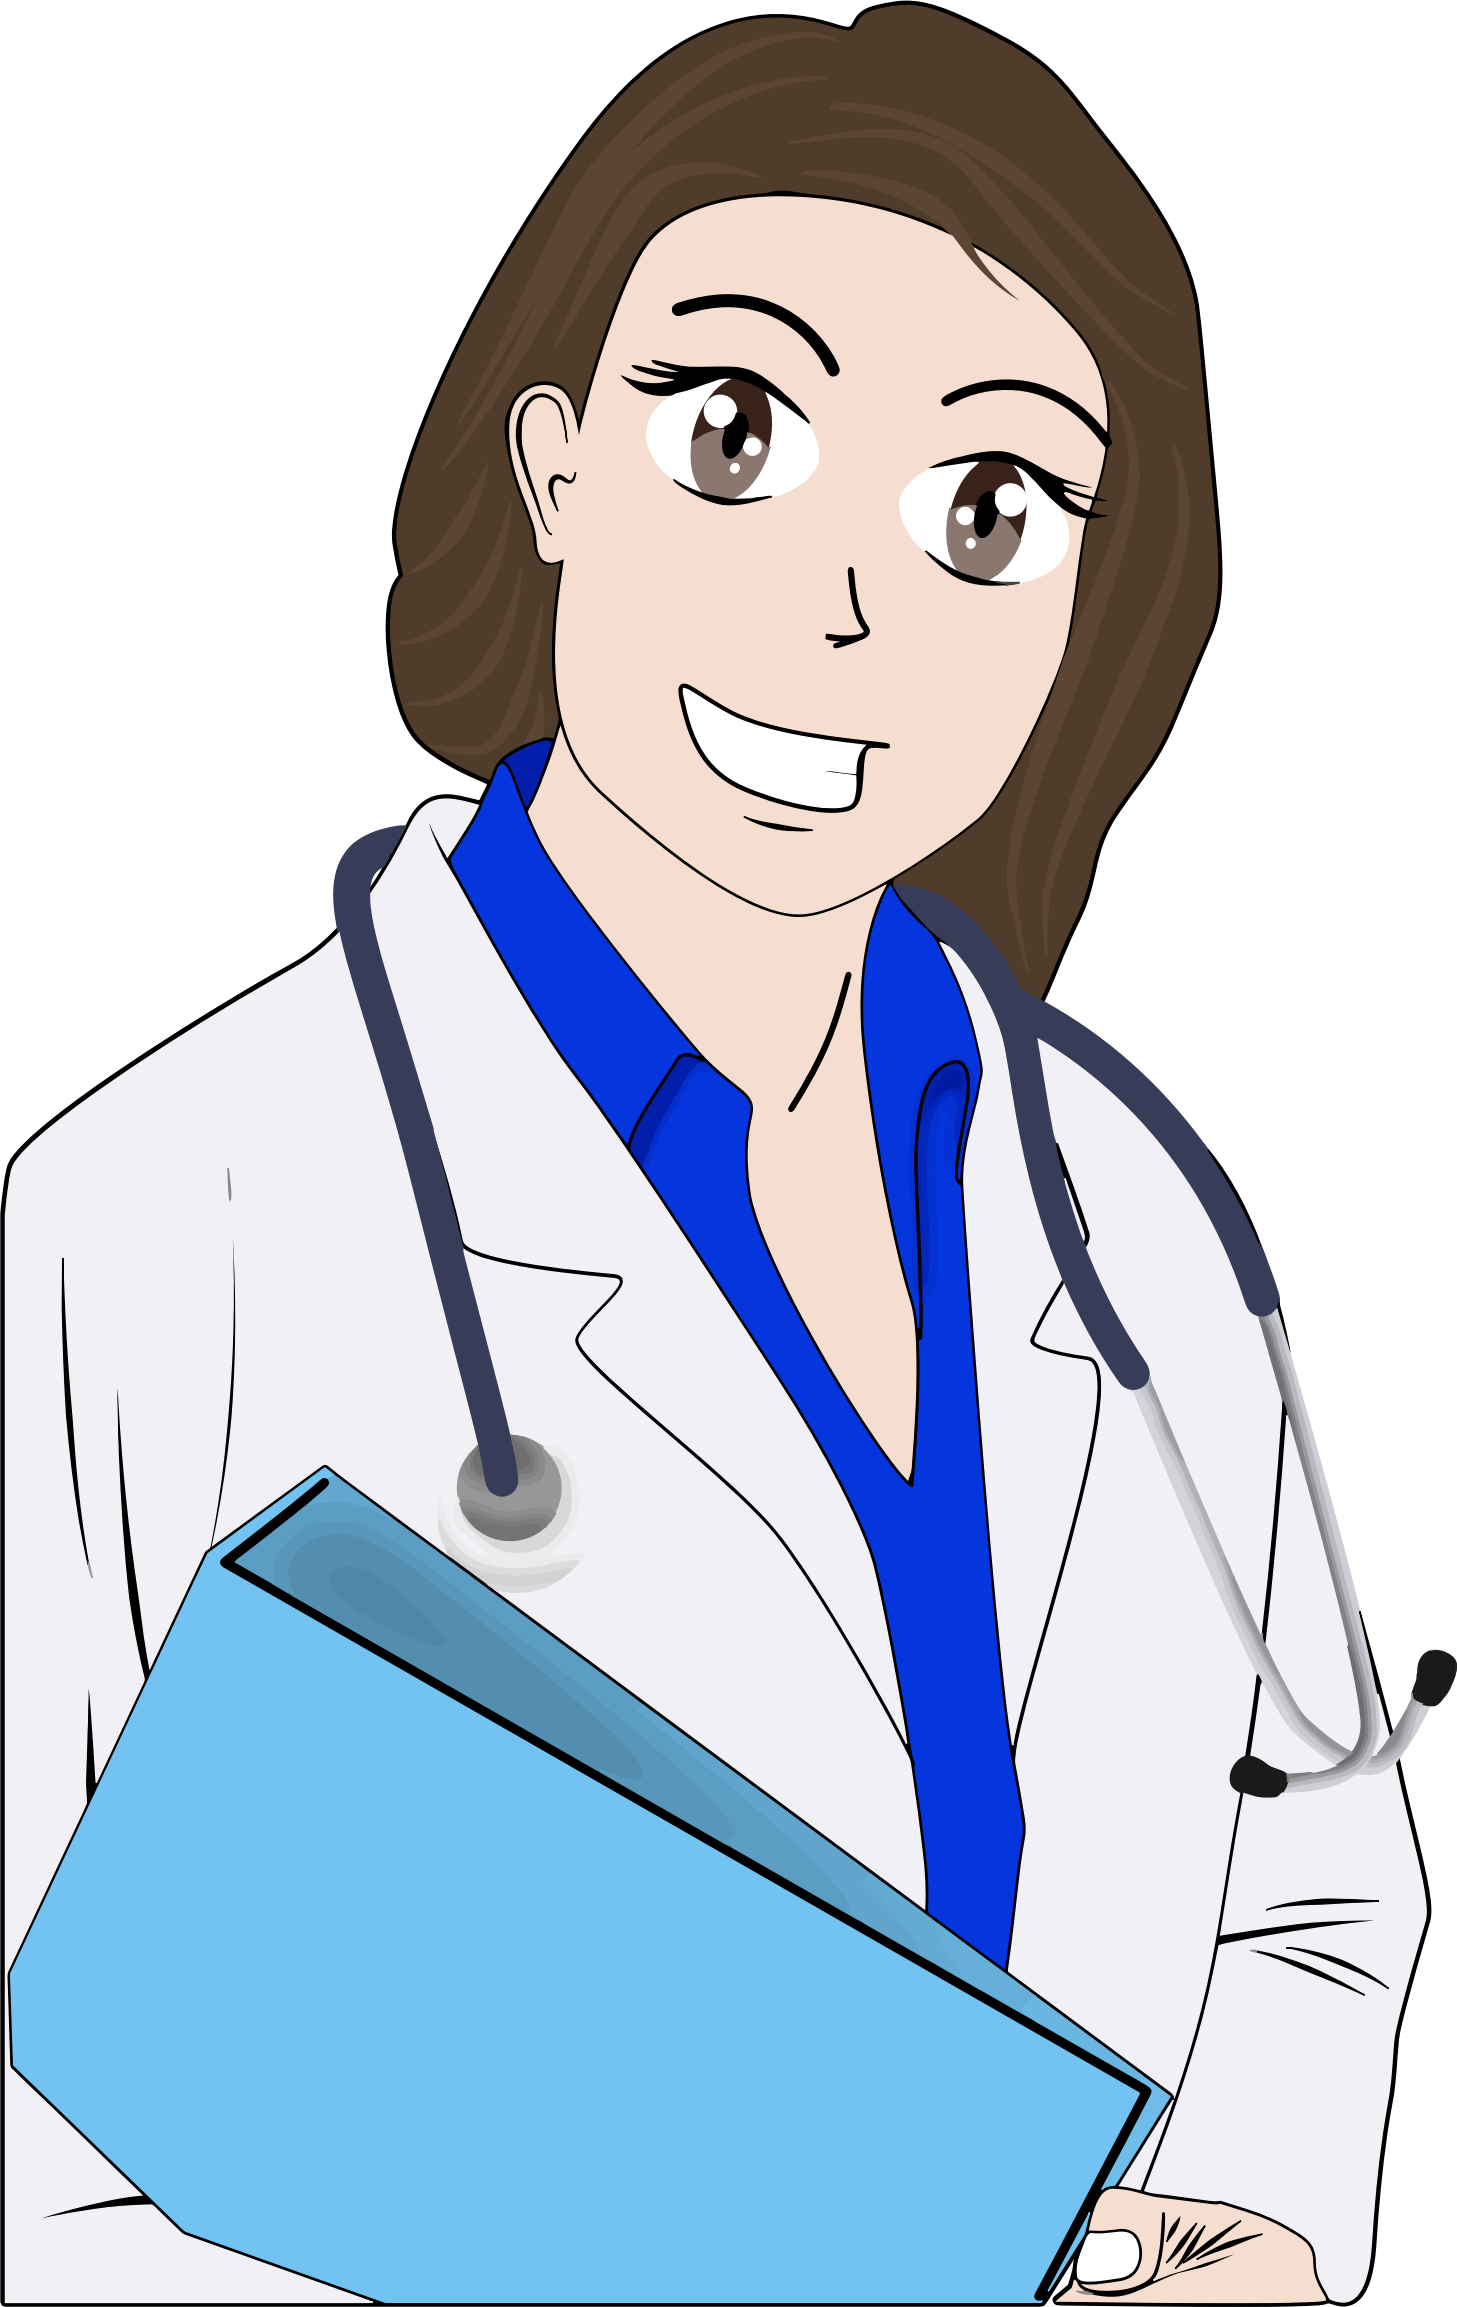 Doctor clipart woman doctor. Cartoon female big image